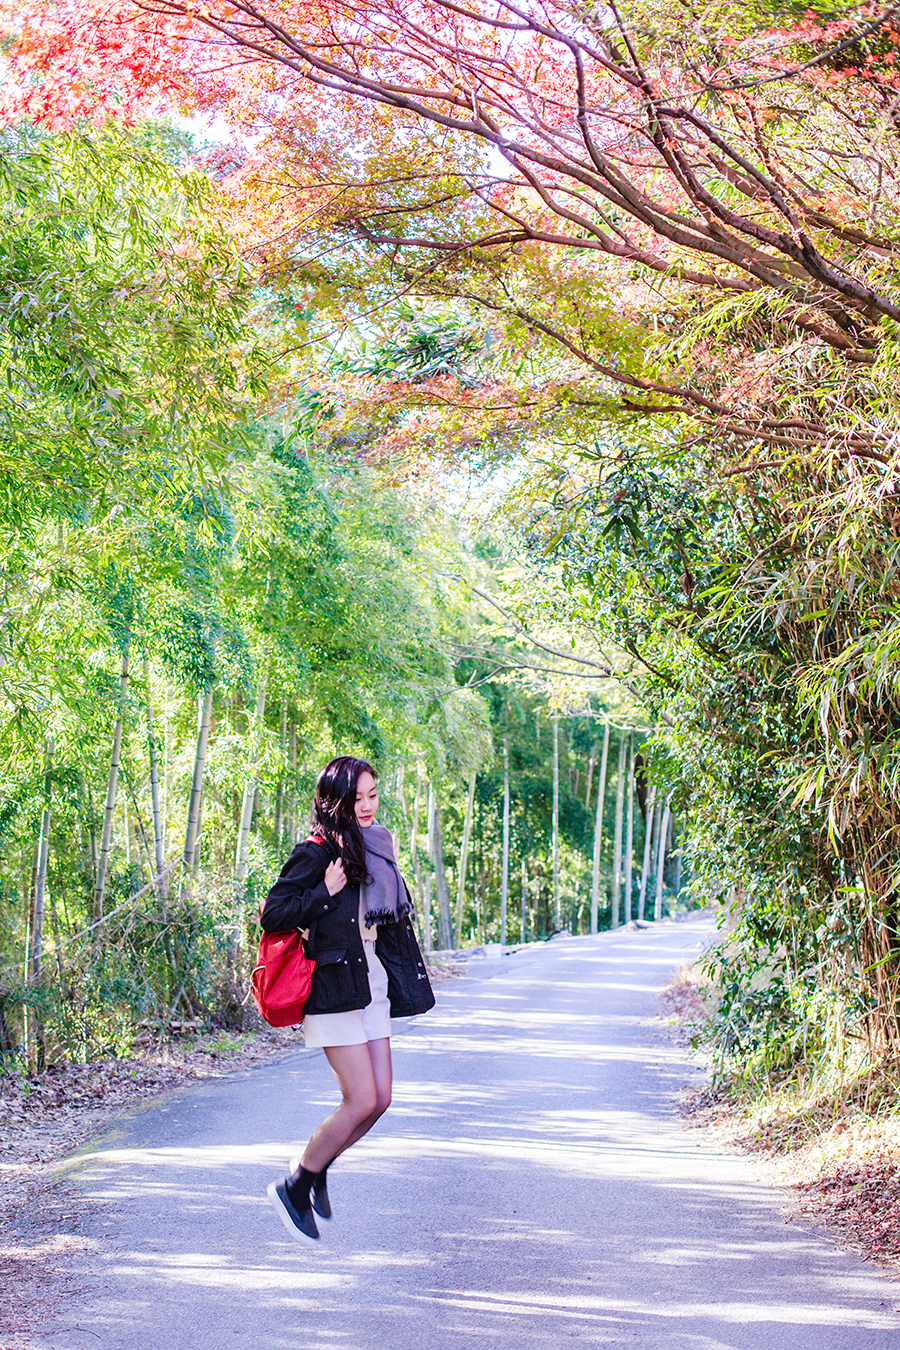 OOTD at Fushimi Inari in Kyoto, Japan: Uniqlo cashmere sweater, H&M menswear coat, Lowry's Farm shorts, DKNY tights, Taobao socks, Spurr monique shoes.